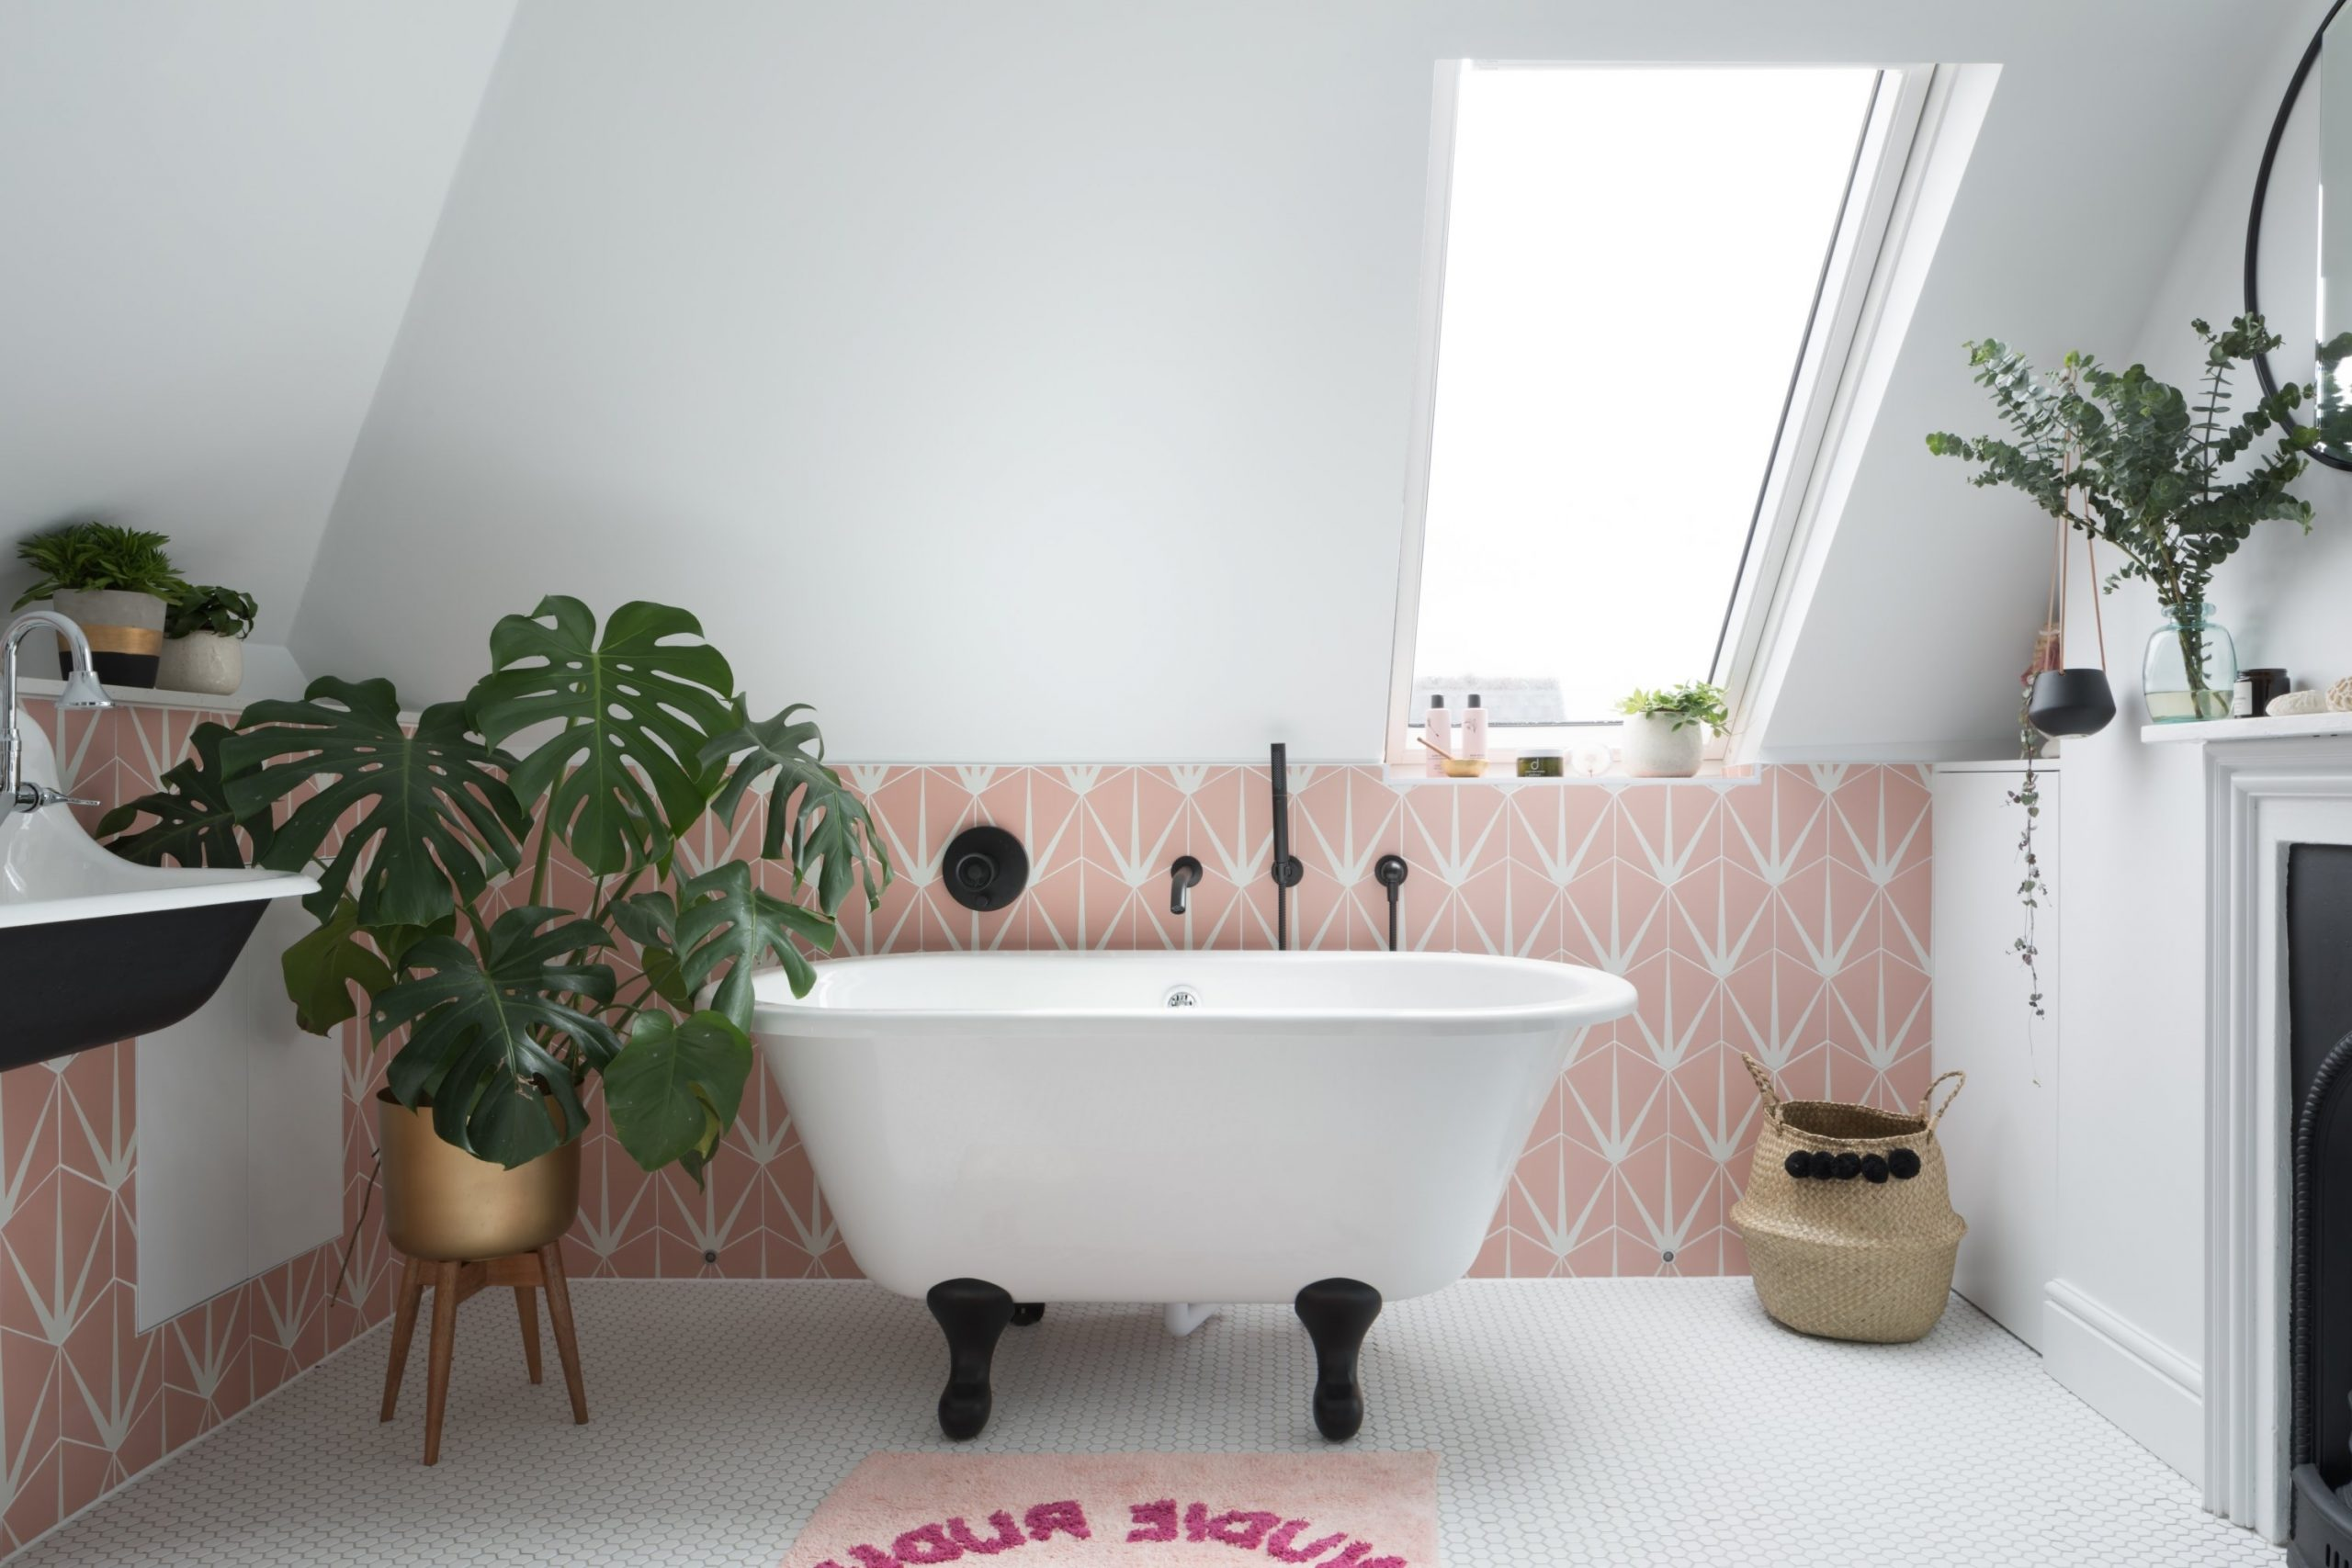 Victorian Family Home | Loft Bathroom | West One Bathrooms 10+ Pitched Roof Bathroom Ideas